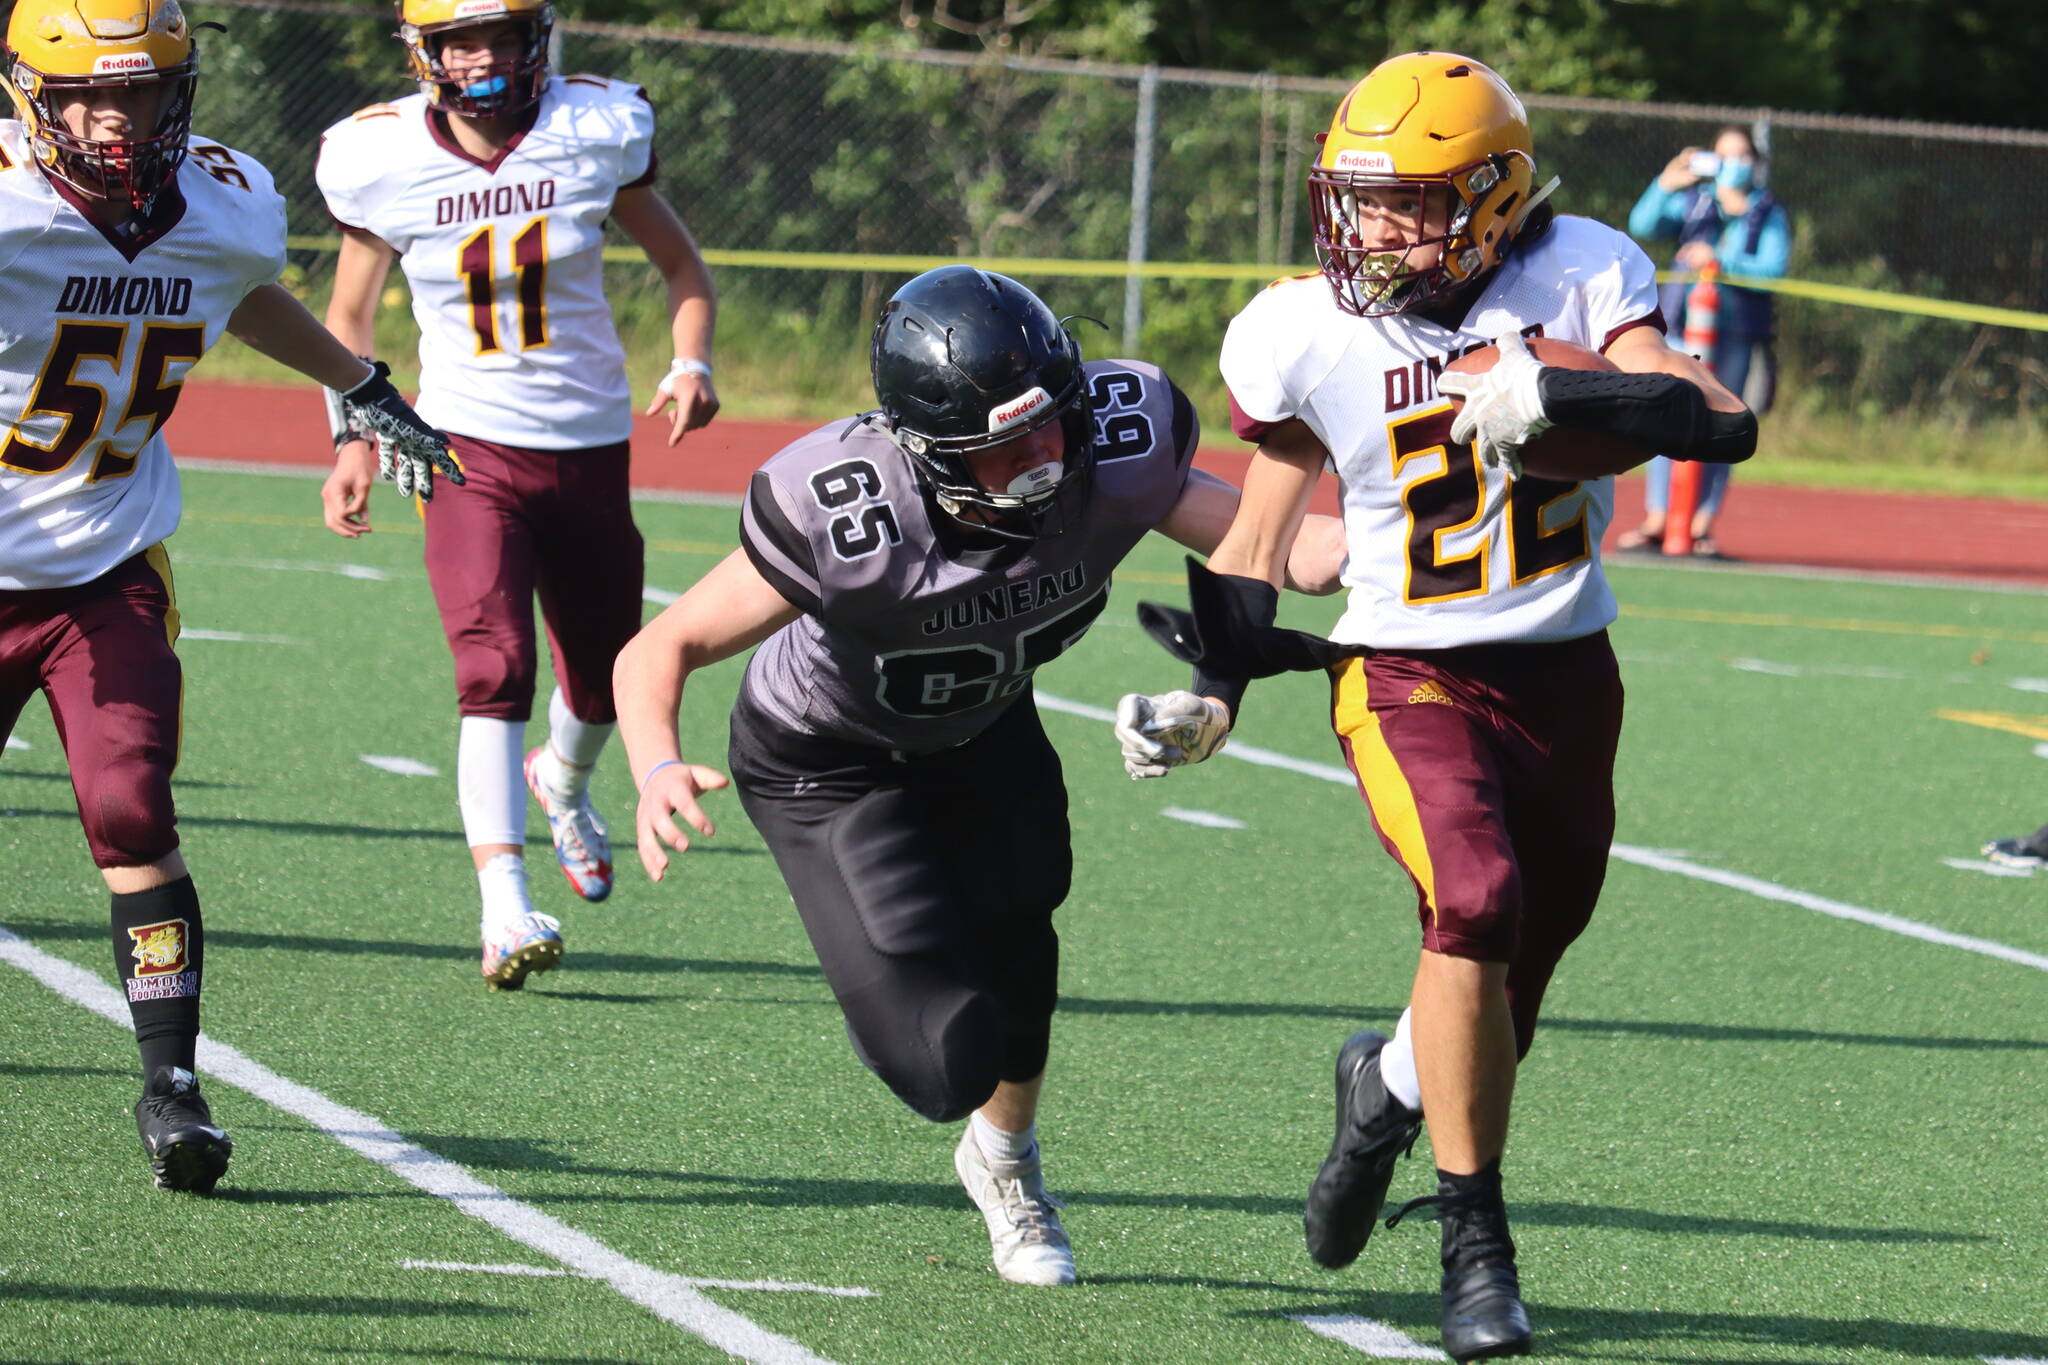 Brandon Campbell chases down a Dimond ball carrier during an Aug. 21 game. The Juneau Huskies and Dimond Lynx will face off again on Saturday. (Ben Hohenstatt / Juneau Empire File)